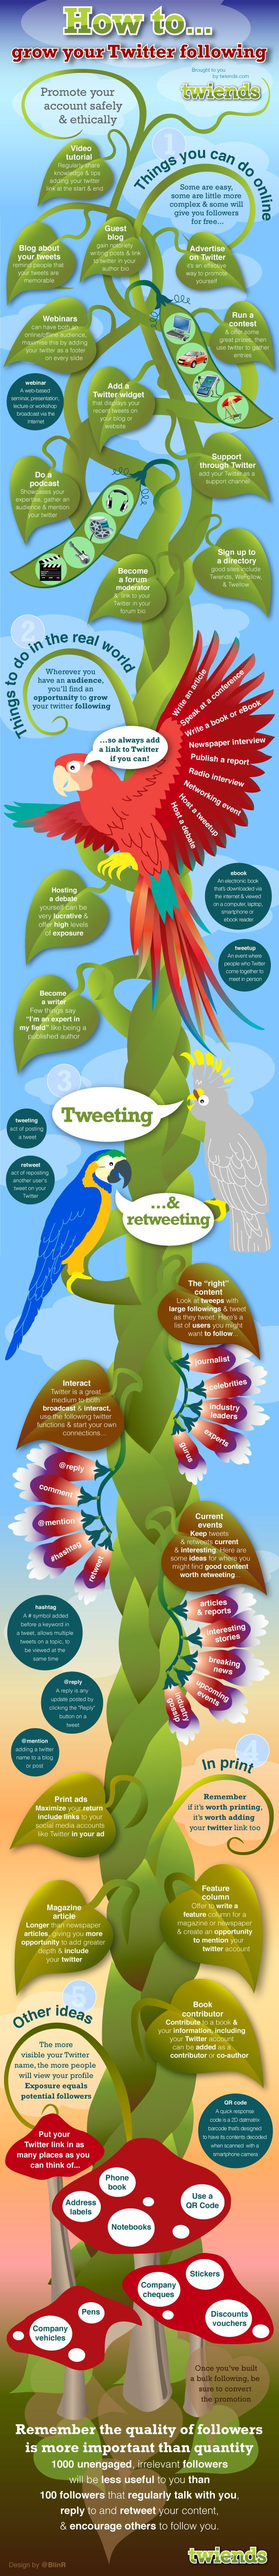 Pretty tropical infographic on gaining twitter followers. Read it for the parrots!: Twitterfollow, En Twitter, Twitter Marketing, Social Media, Pinterest Infographic, Twitter Follow, Media Infographic, Socialmedia, Follow Infographic